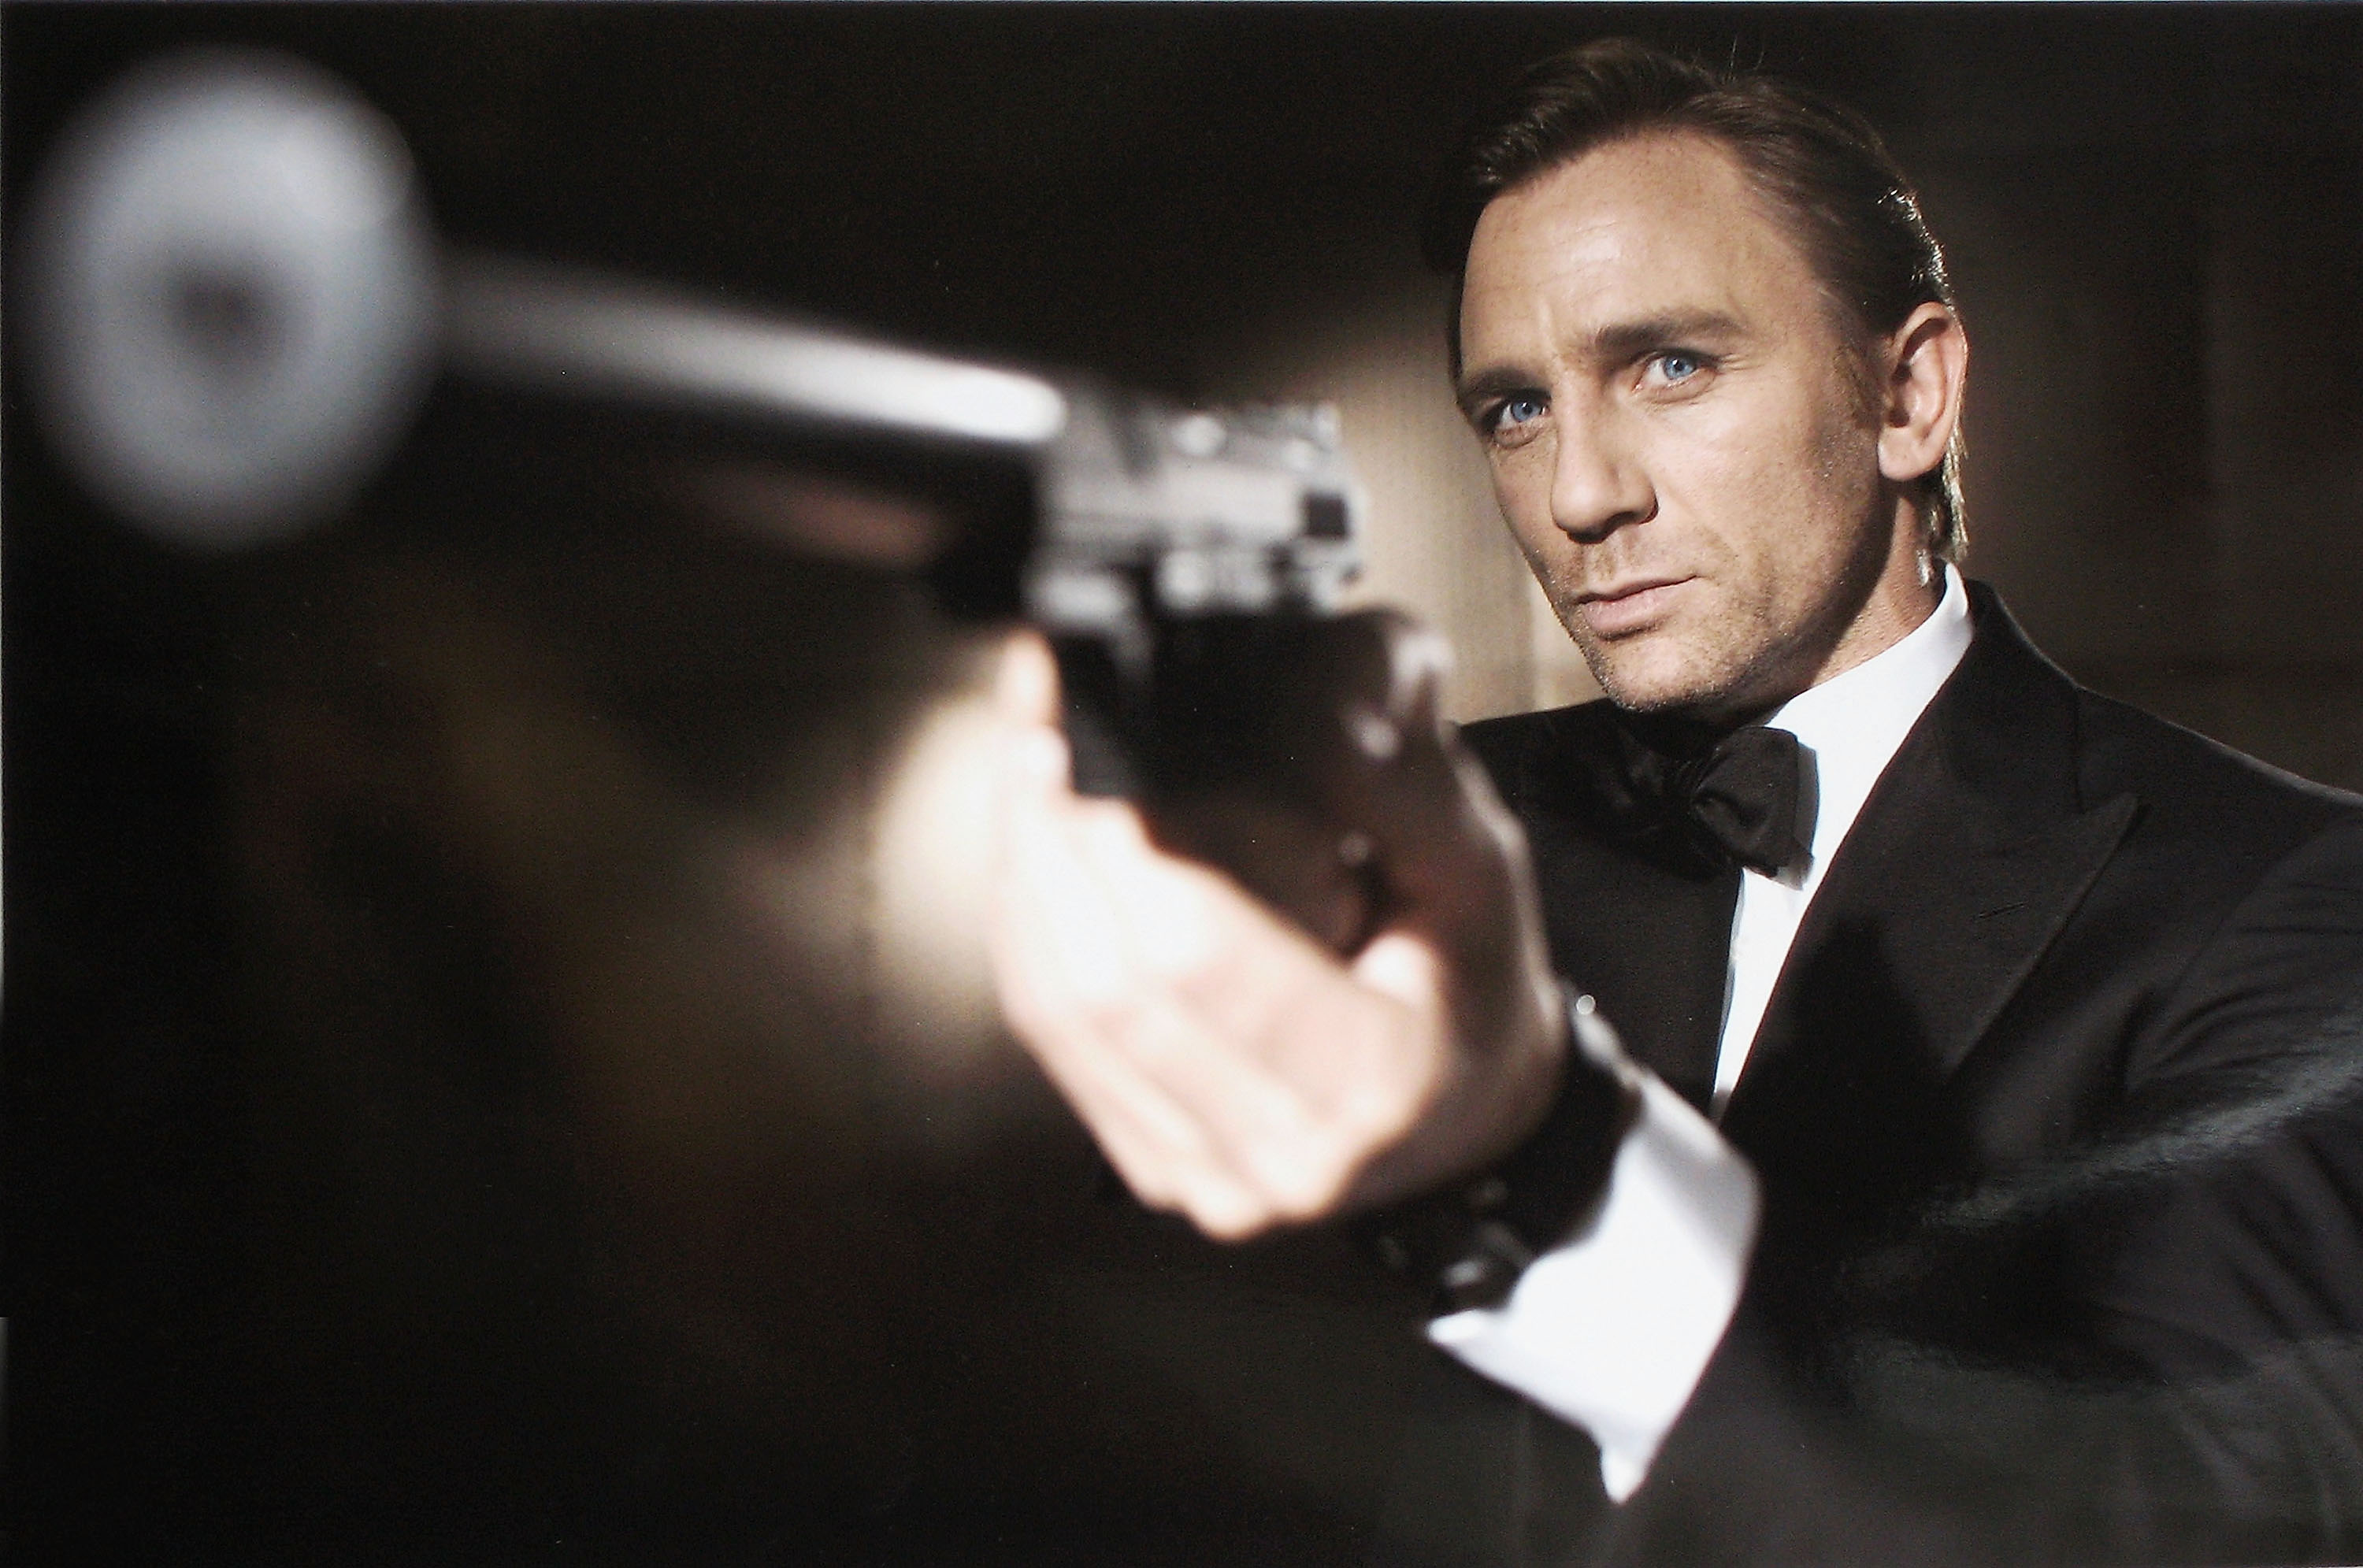 In this undated handout photo from Eon Productions, actor Daniel Craig poses as James Bond.